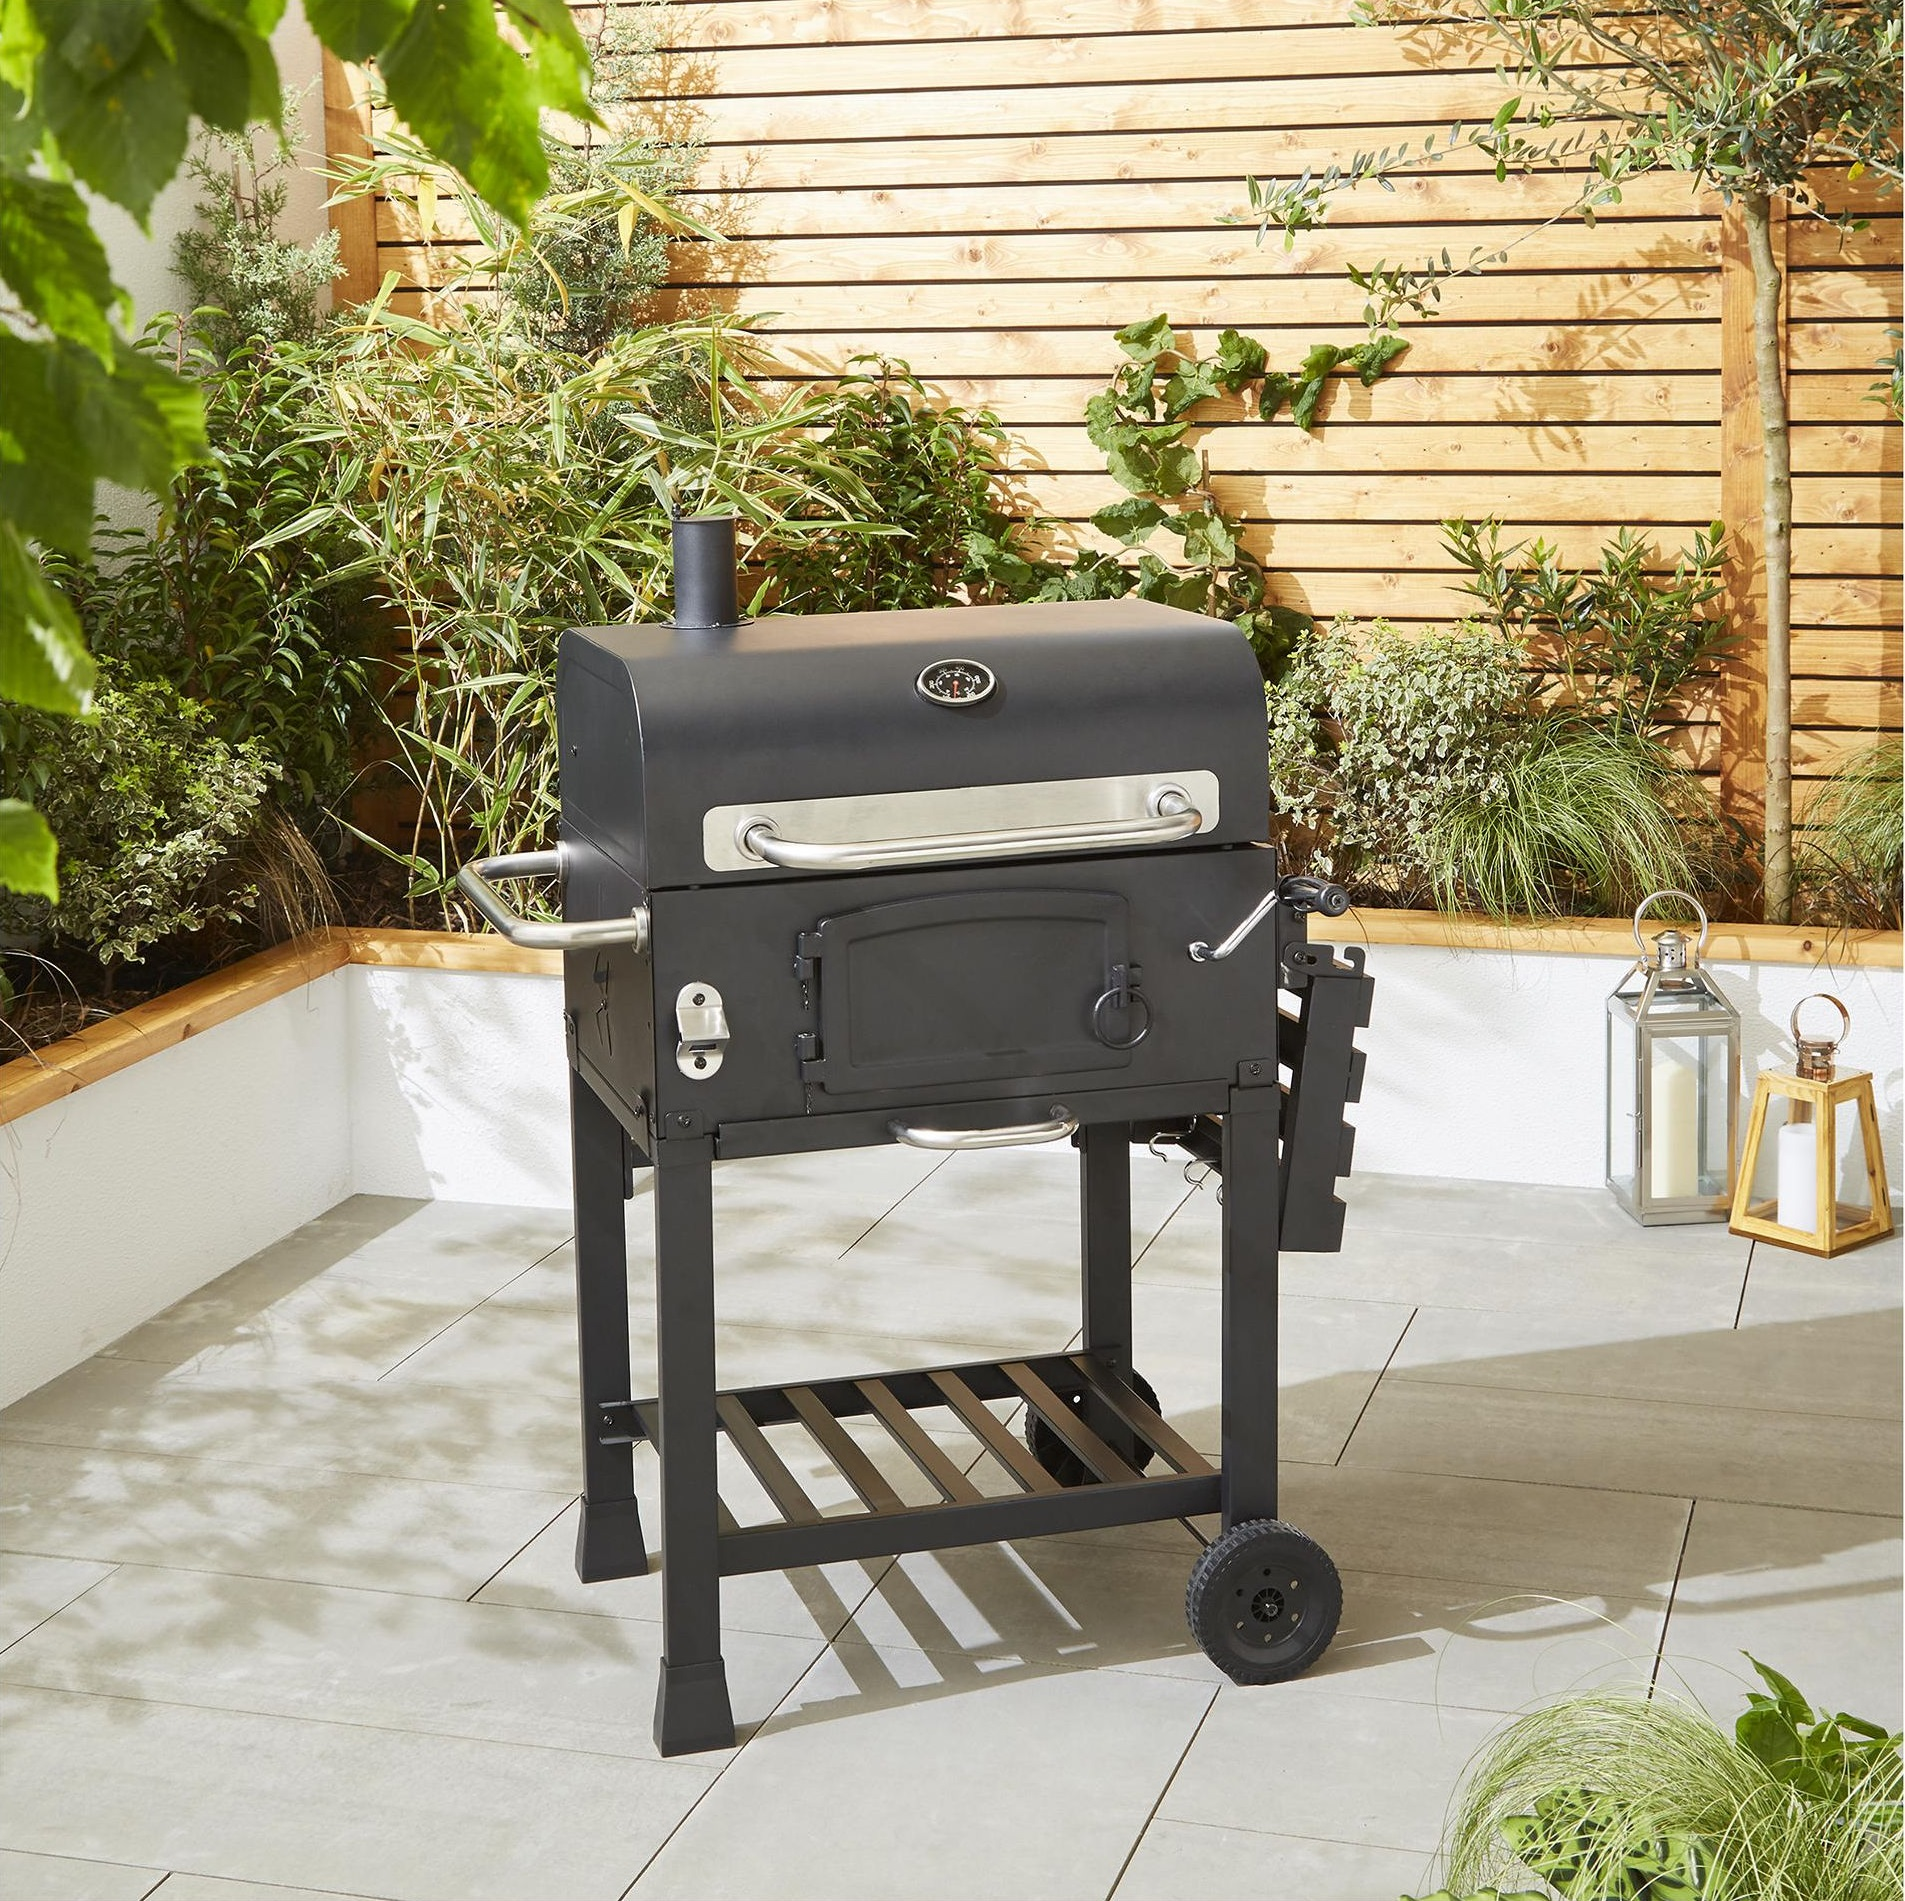 New tesco american adjustable grill charcoal bbq with for Modern barbecue grill